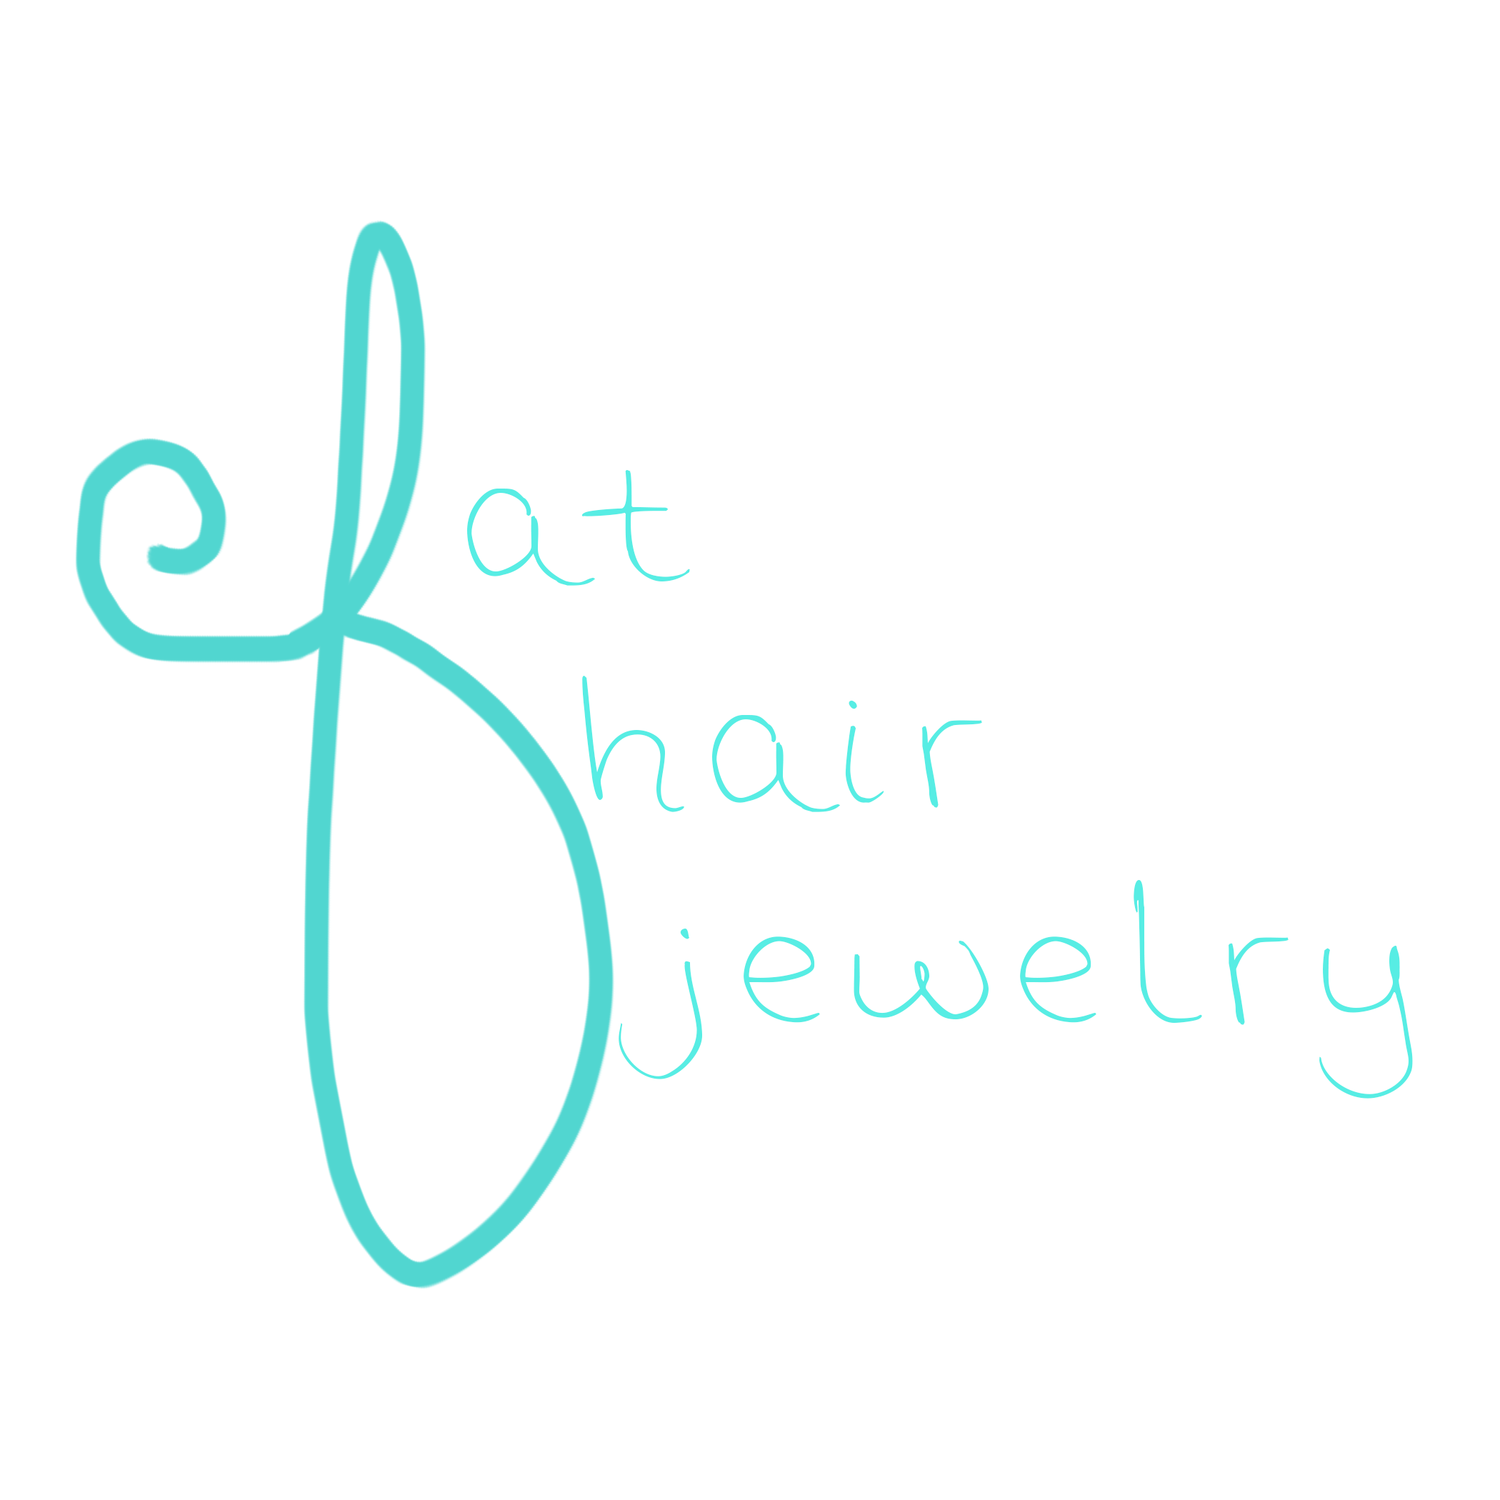 FatHair Jewelry